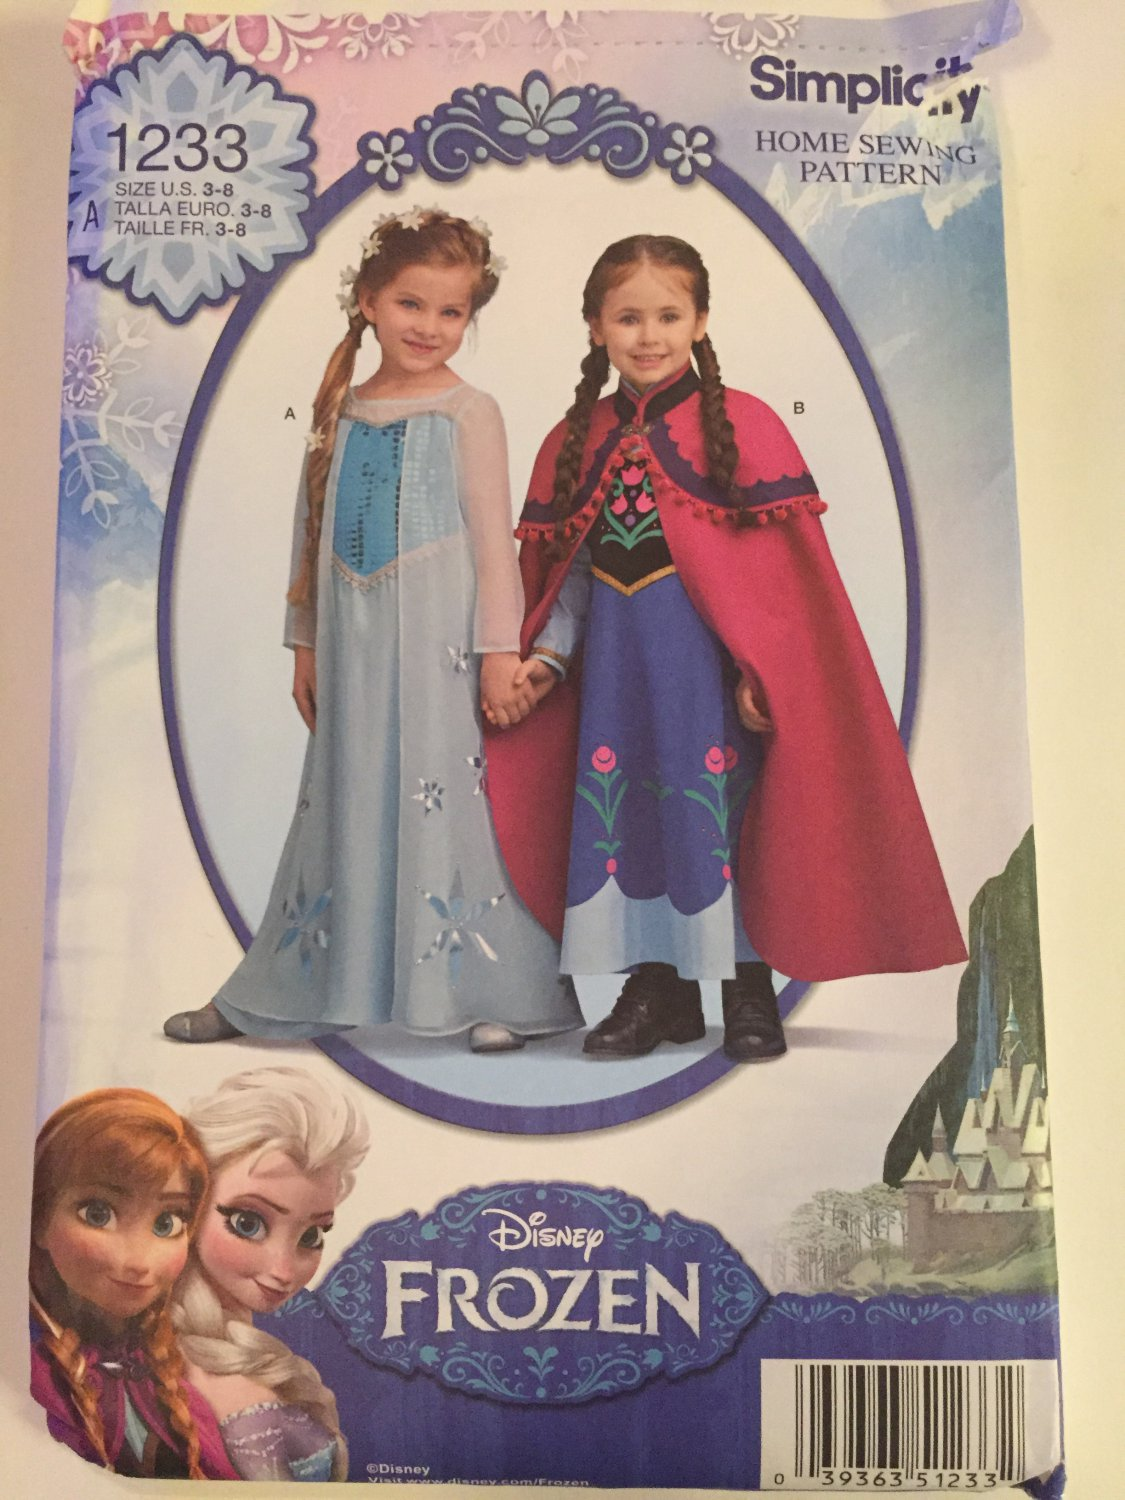 Simplicity 1333 Child's Disney Frozen Princess Gowns, Sizes 3, 6, 7, 8, UNCUT